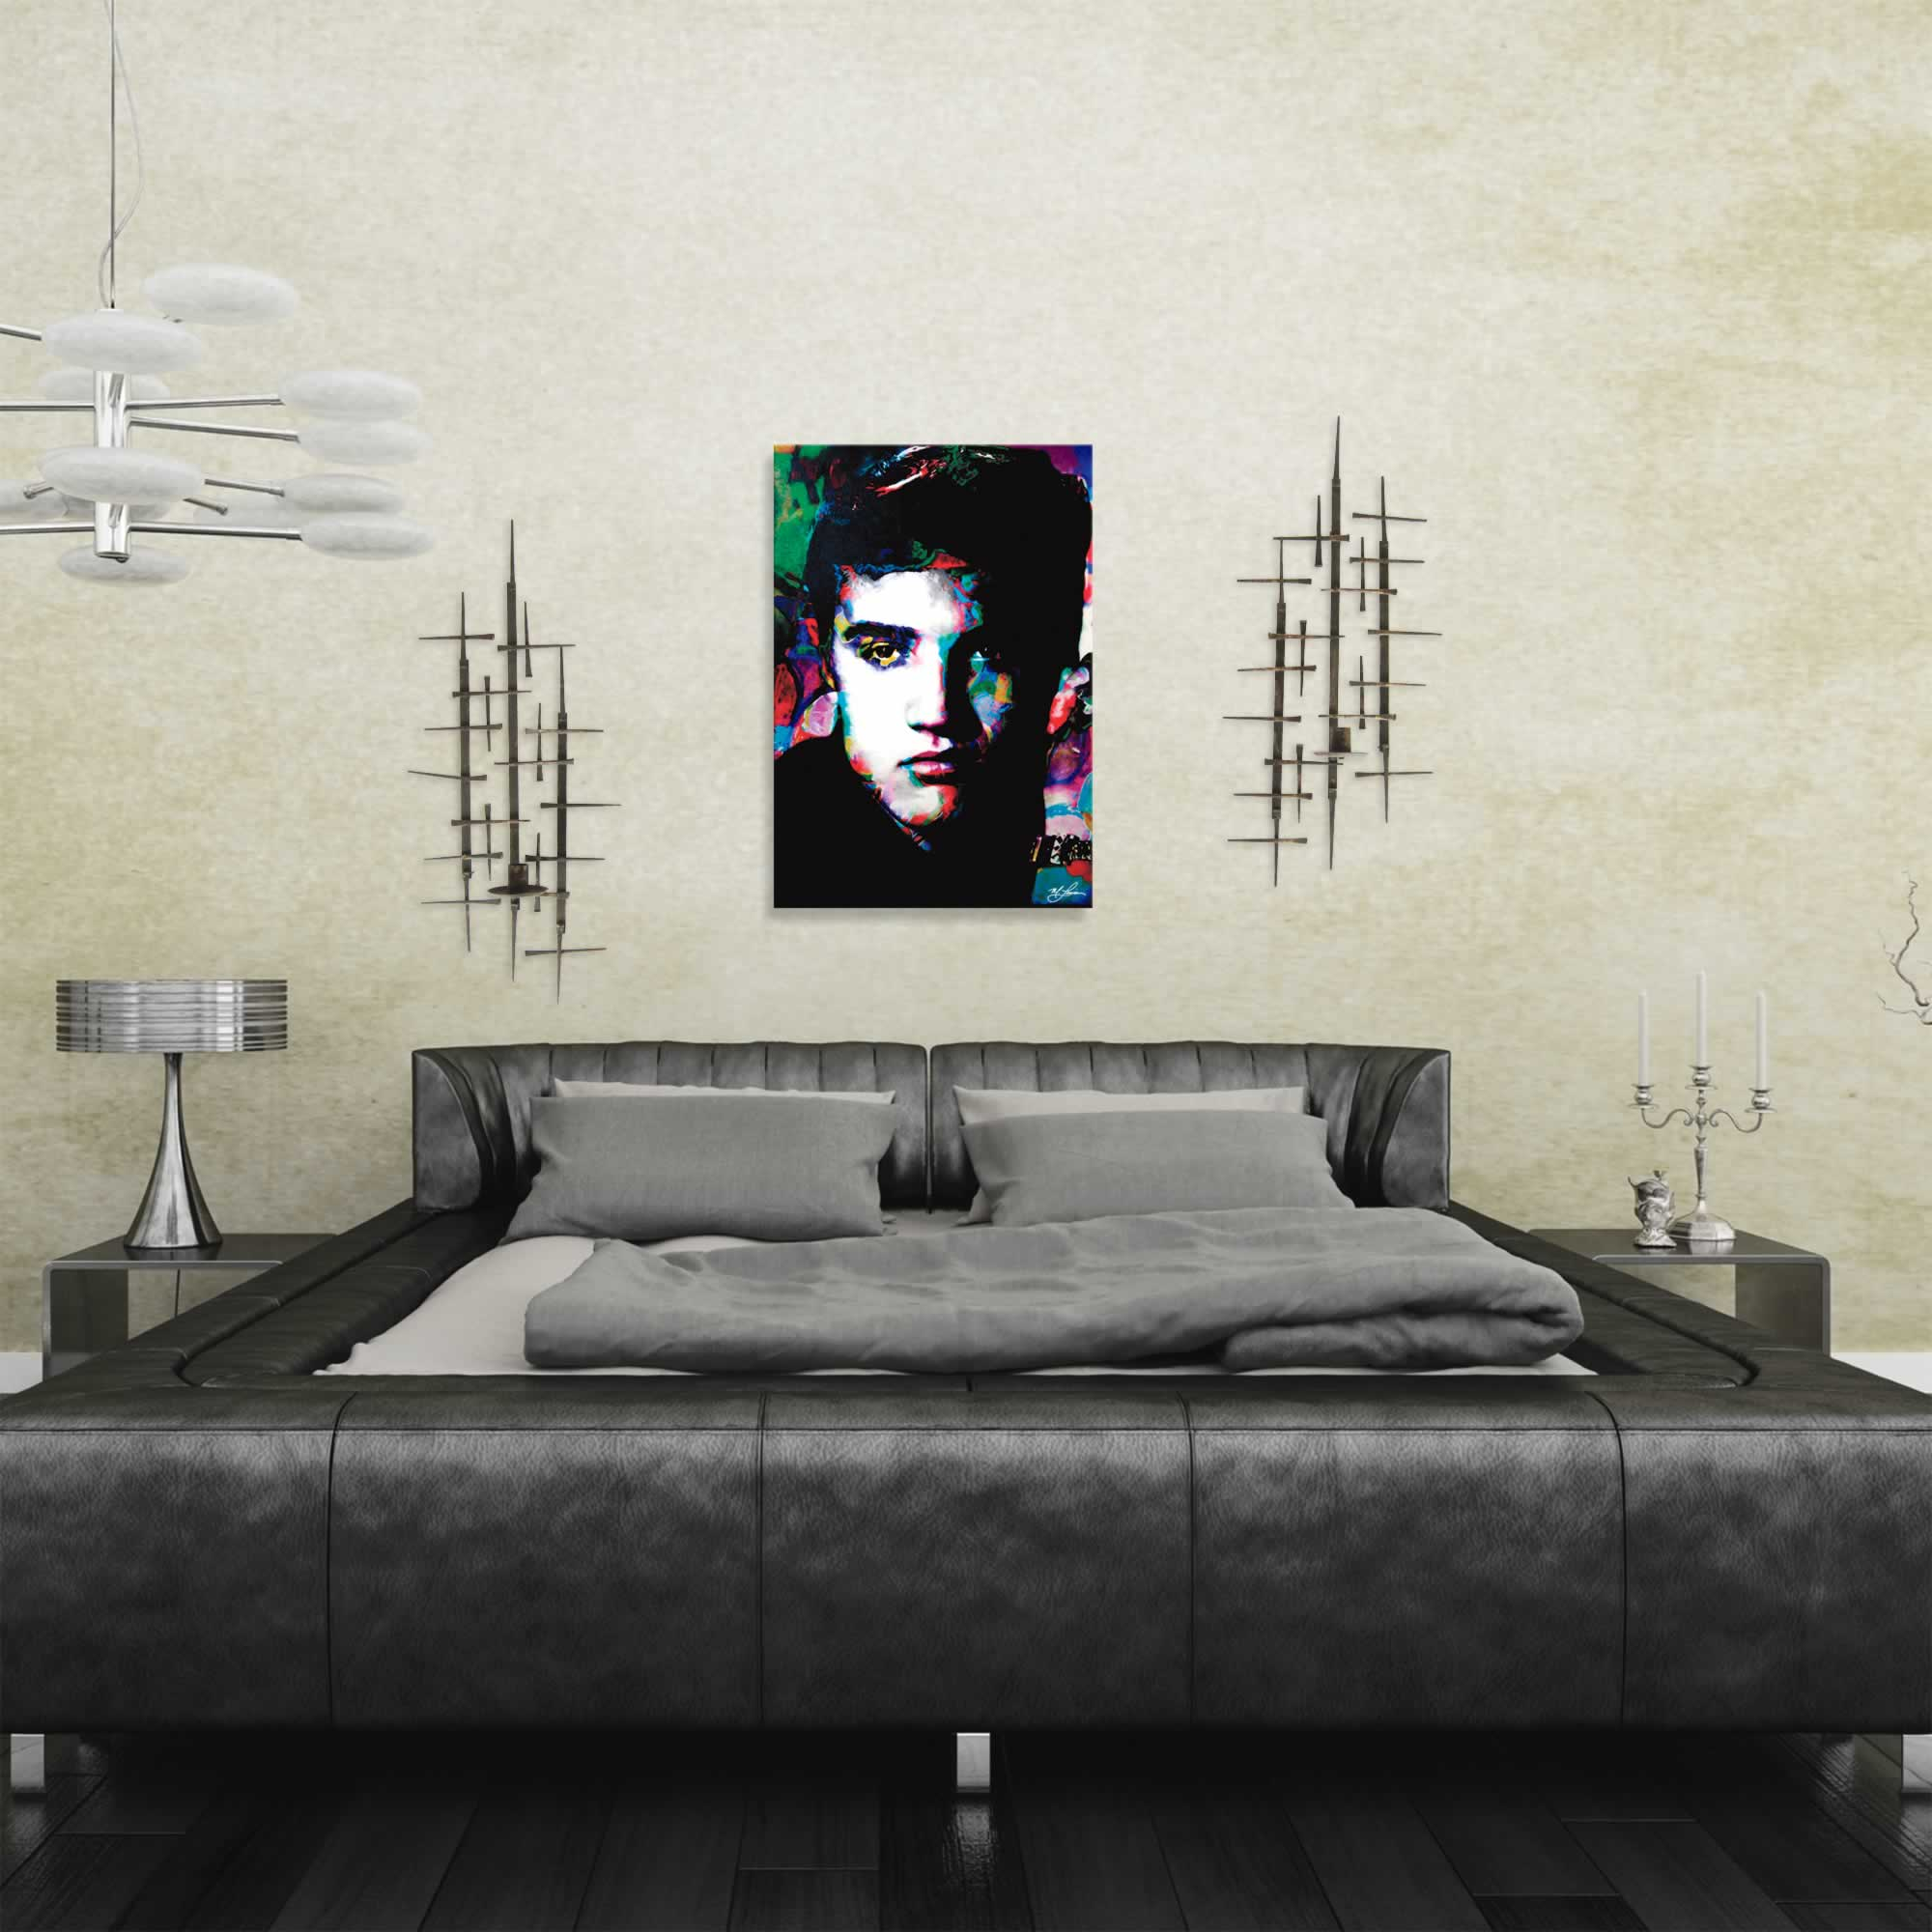 Elvis Presley Electric Ambition | Pop Art Painting by Mark Lewis, Signed & Numbered Limited Edition - ML0013